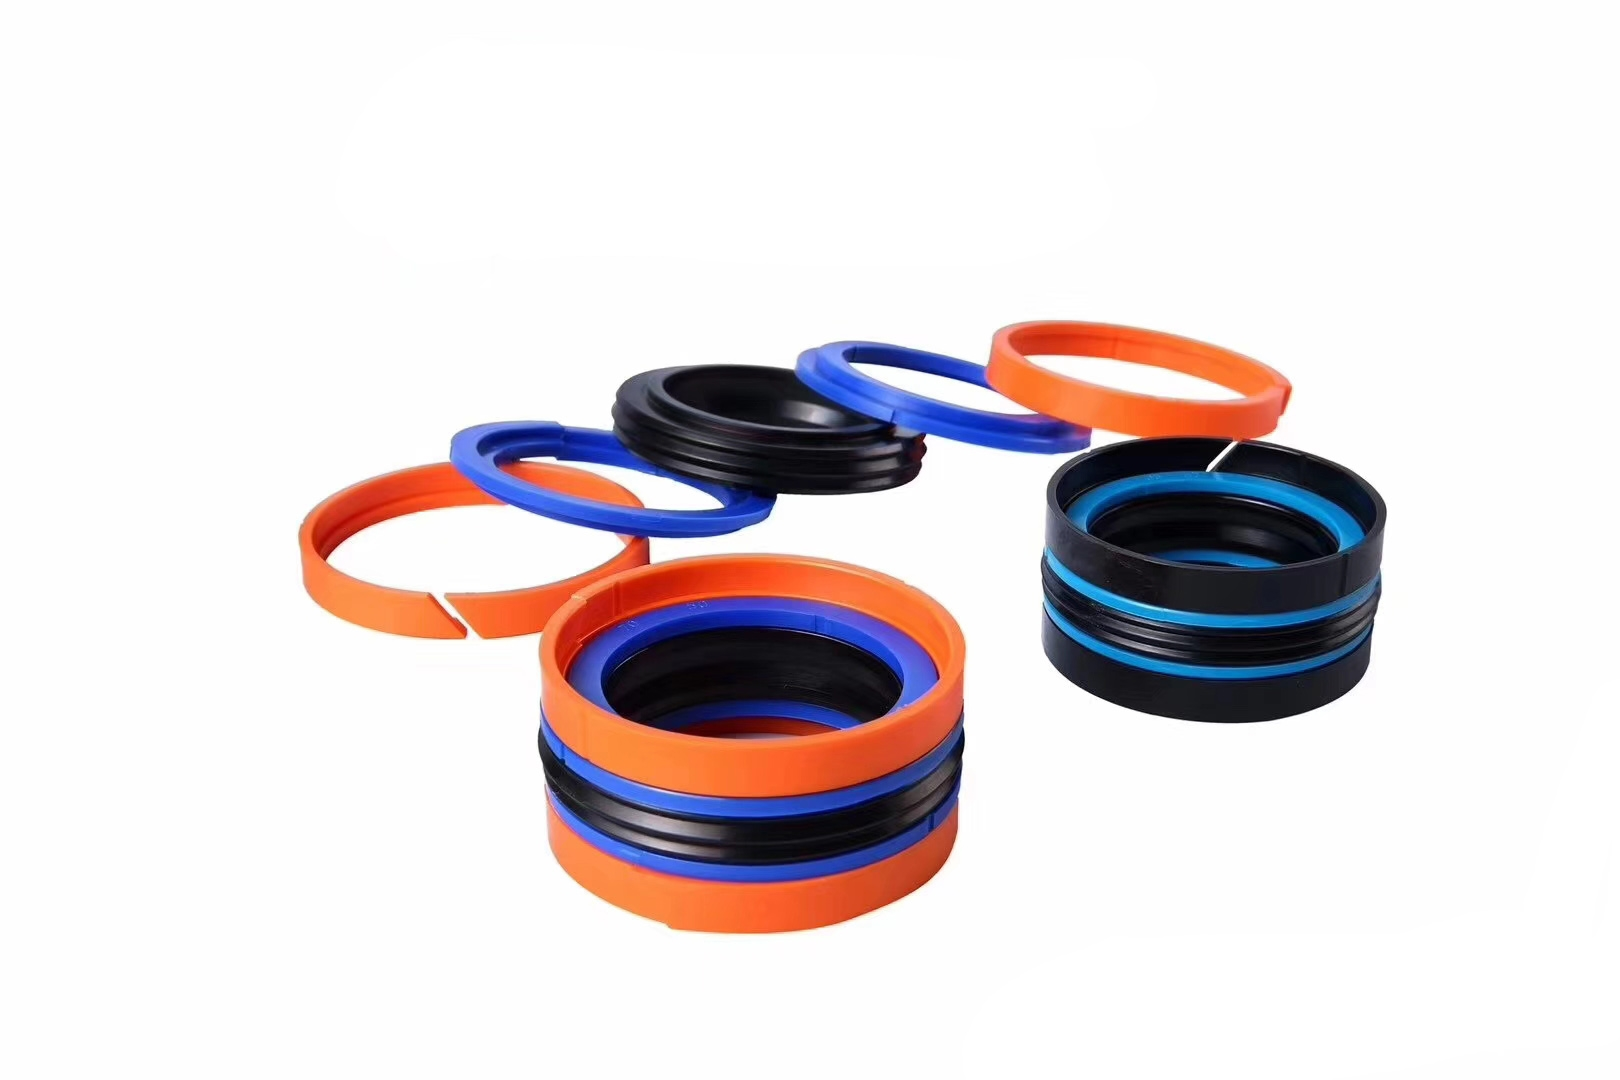 Piston Seals au Piston Rings